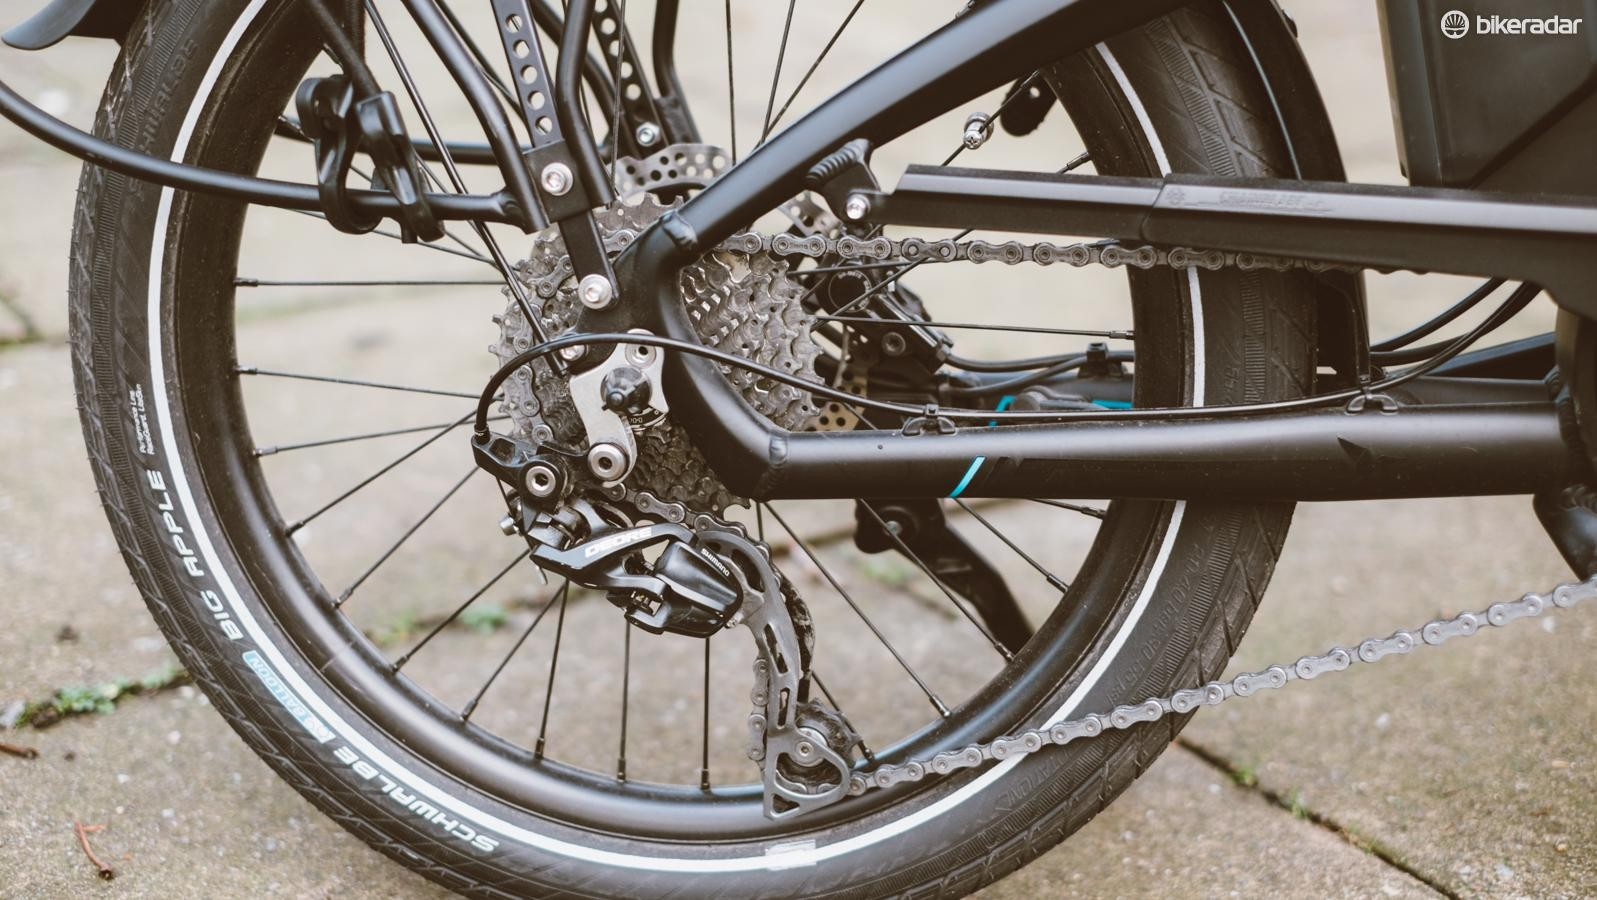 The mountain bike-derived 1x10 drivetrain looks like a solid choice to us